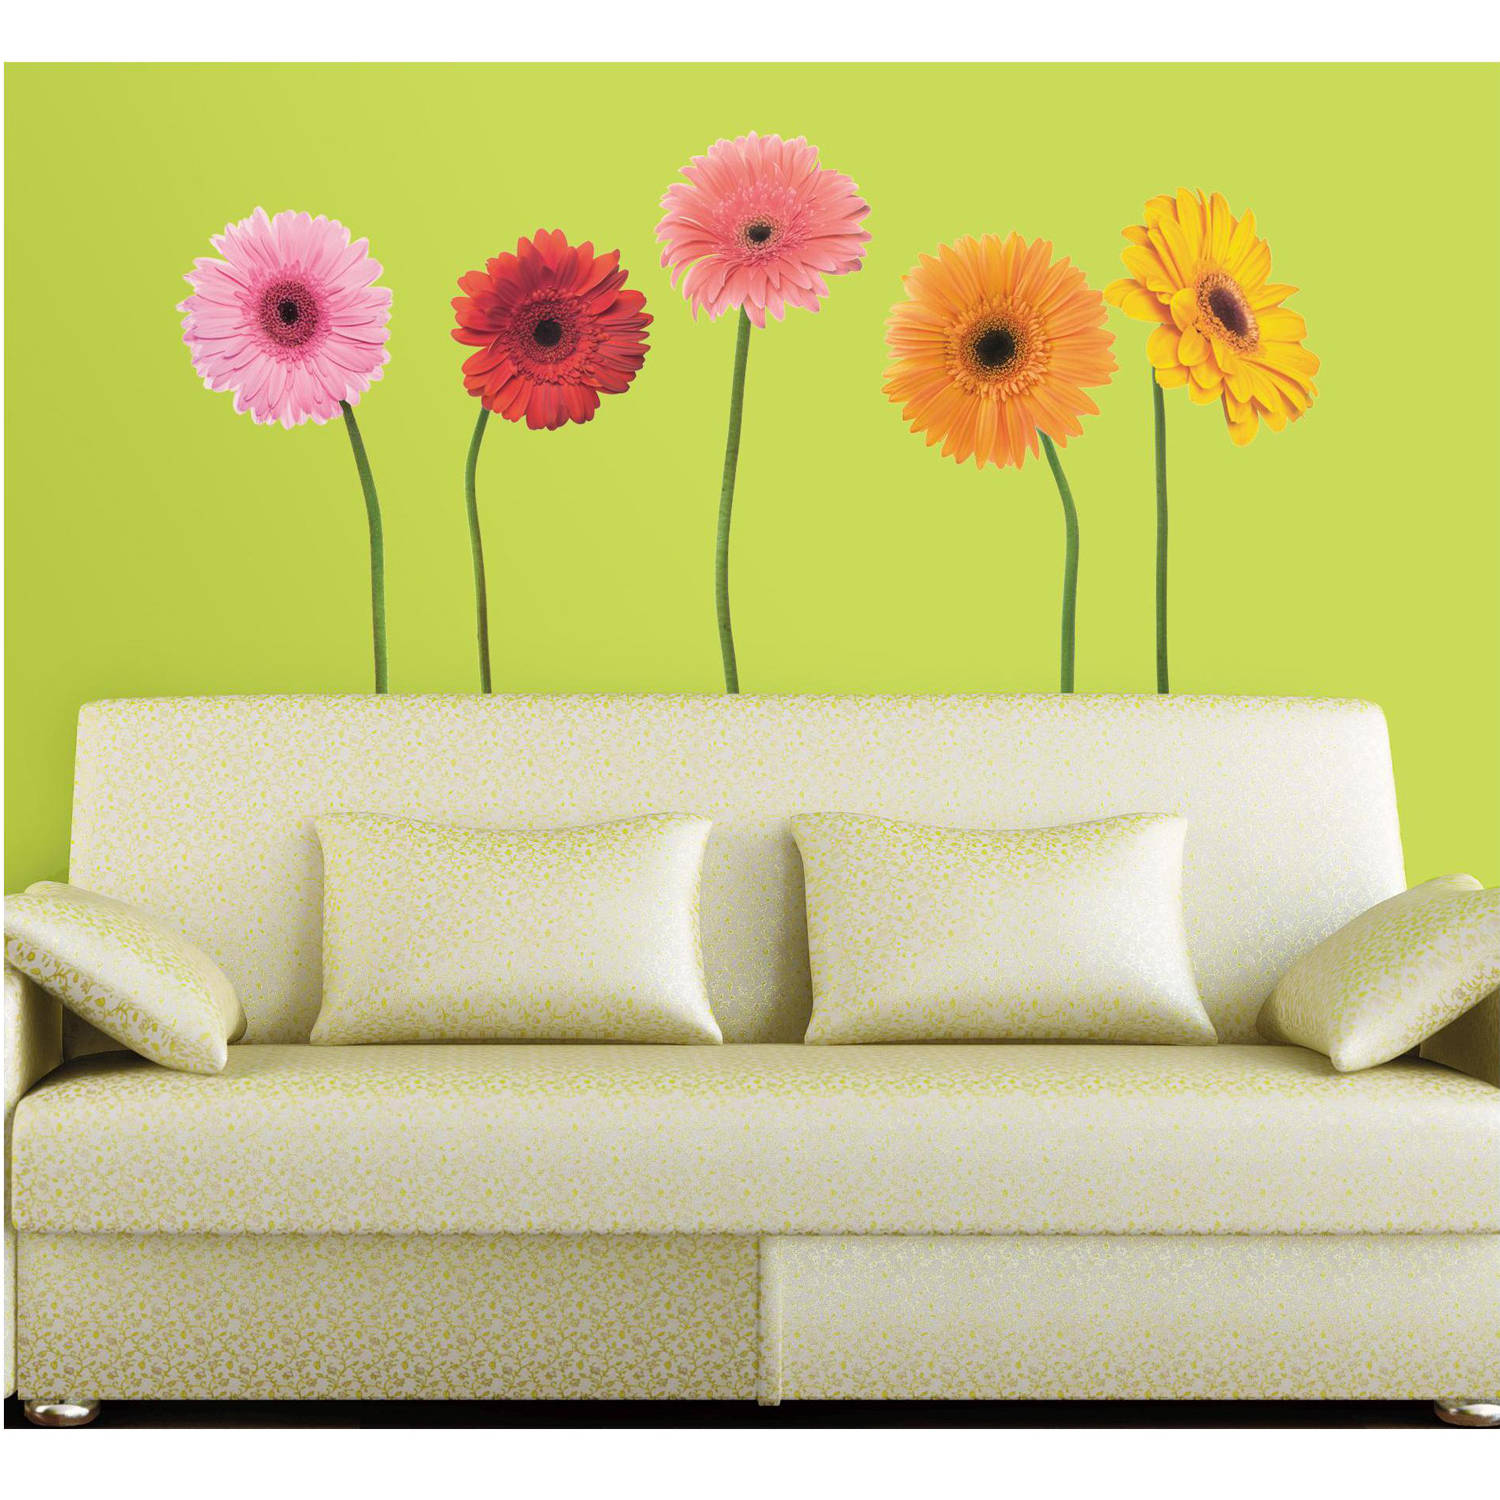 RoomMates Gerber Daisies Peel and Stick Wall Decals